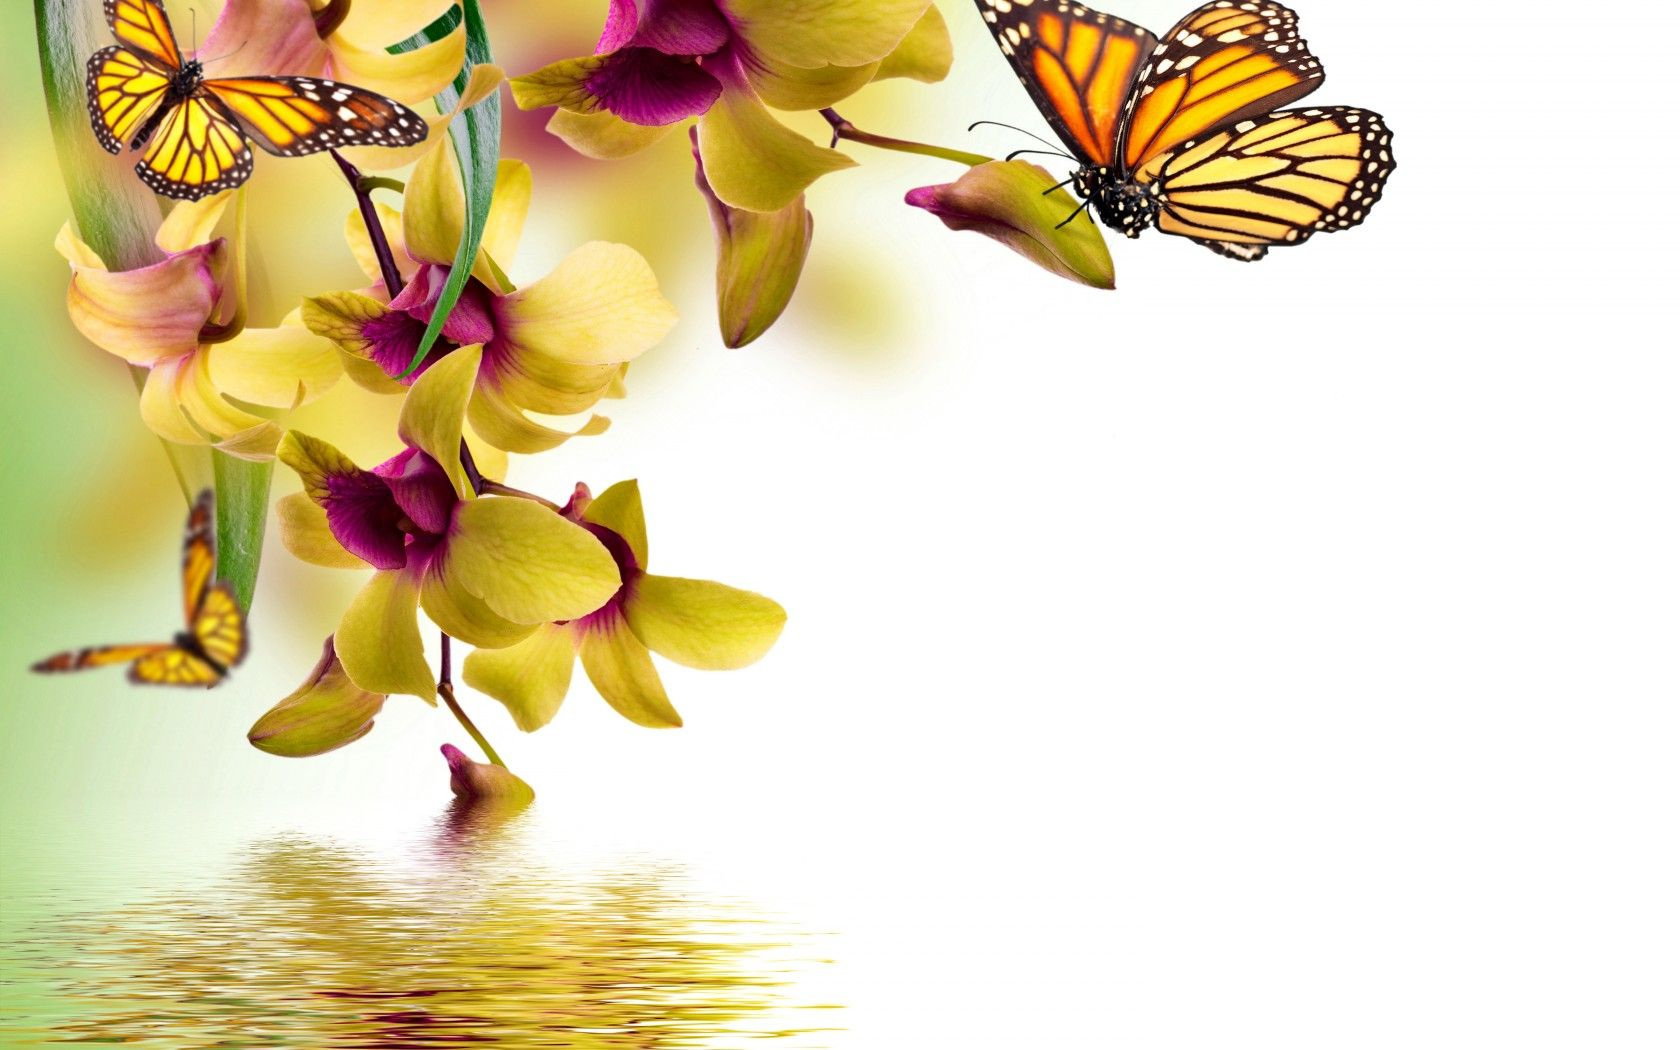 Beautiful Orchid Flowers And Butterfly Reflected In Water Hd Wallpaper By MariJane